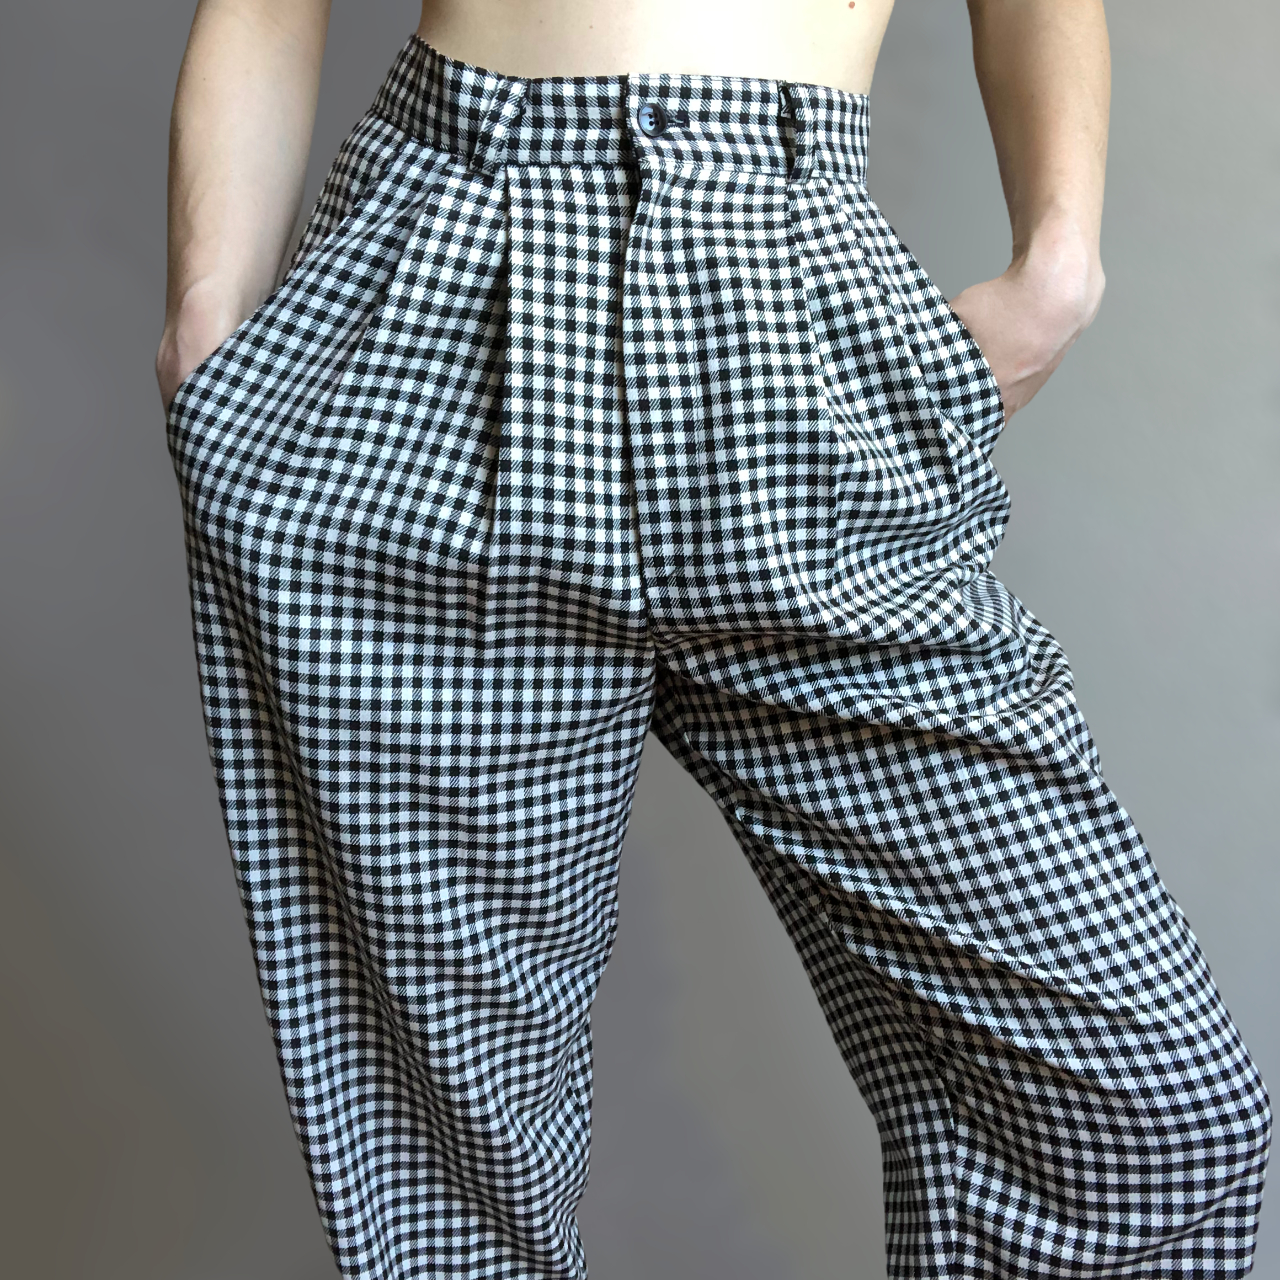 Product Image 1 - High-waisted vintage black and white